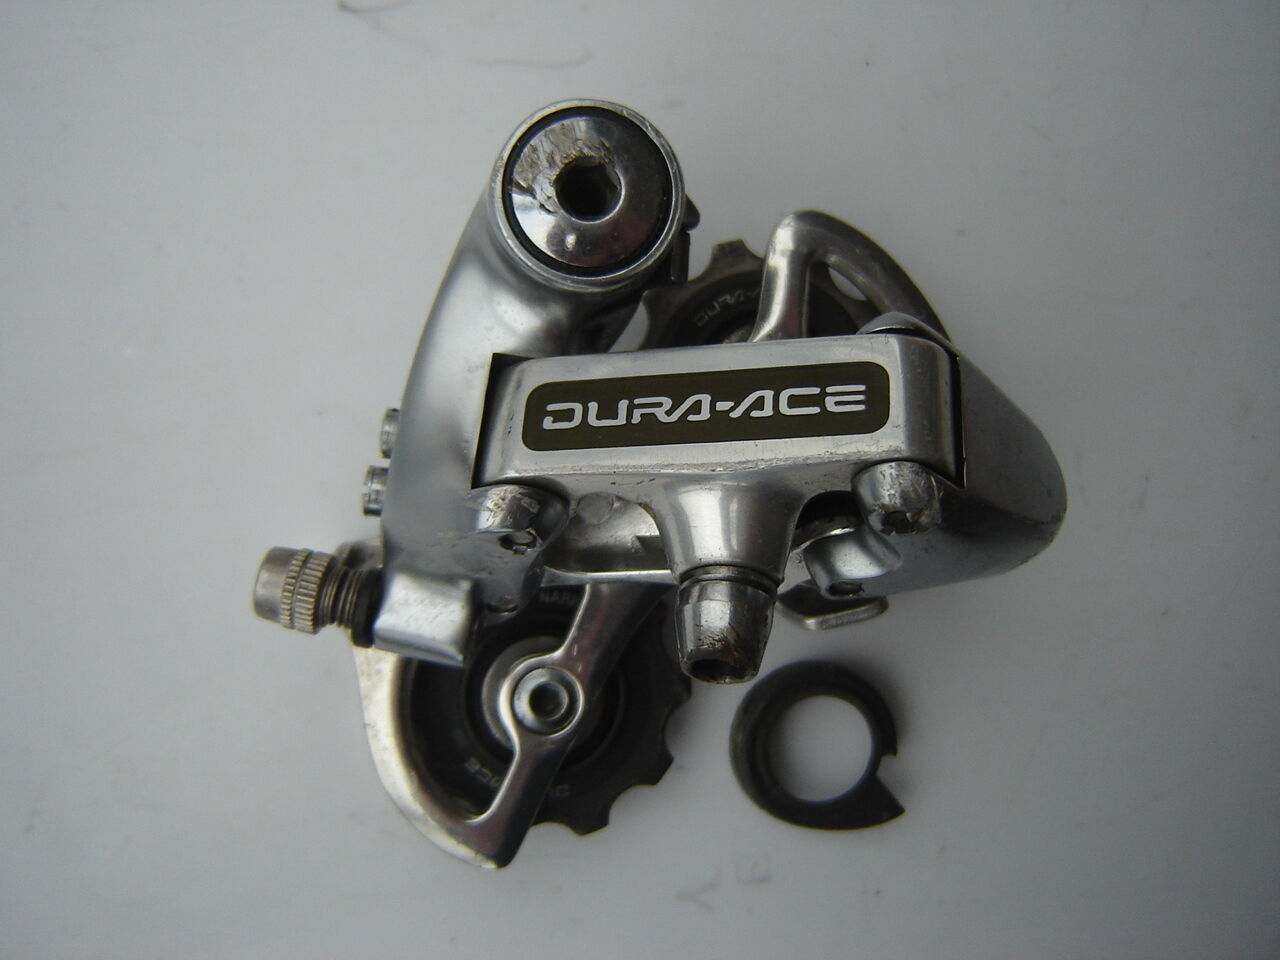 SHIMANO DURA ACE RD-7402 8-SPEED REAR DERAILLEUR   fishional store for sale